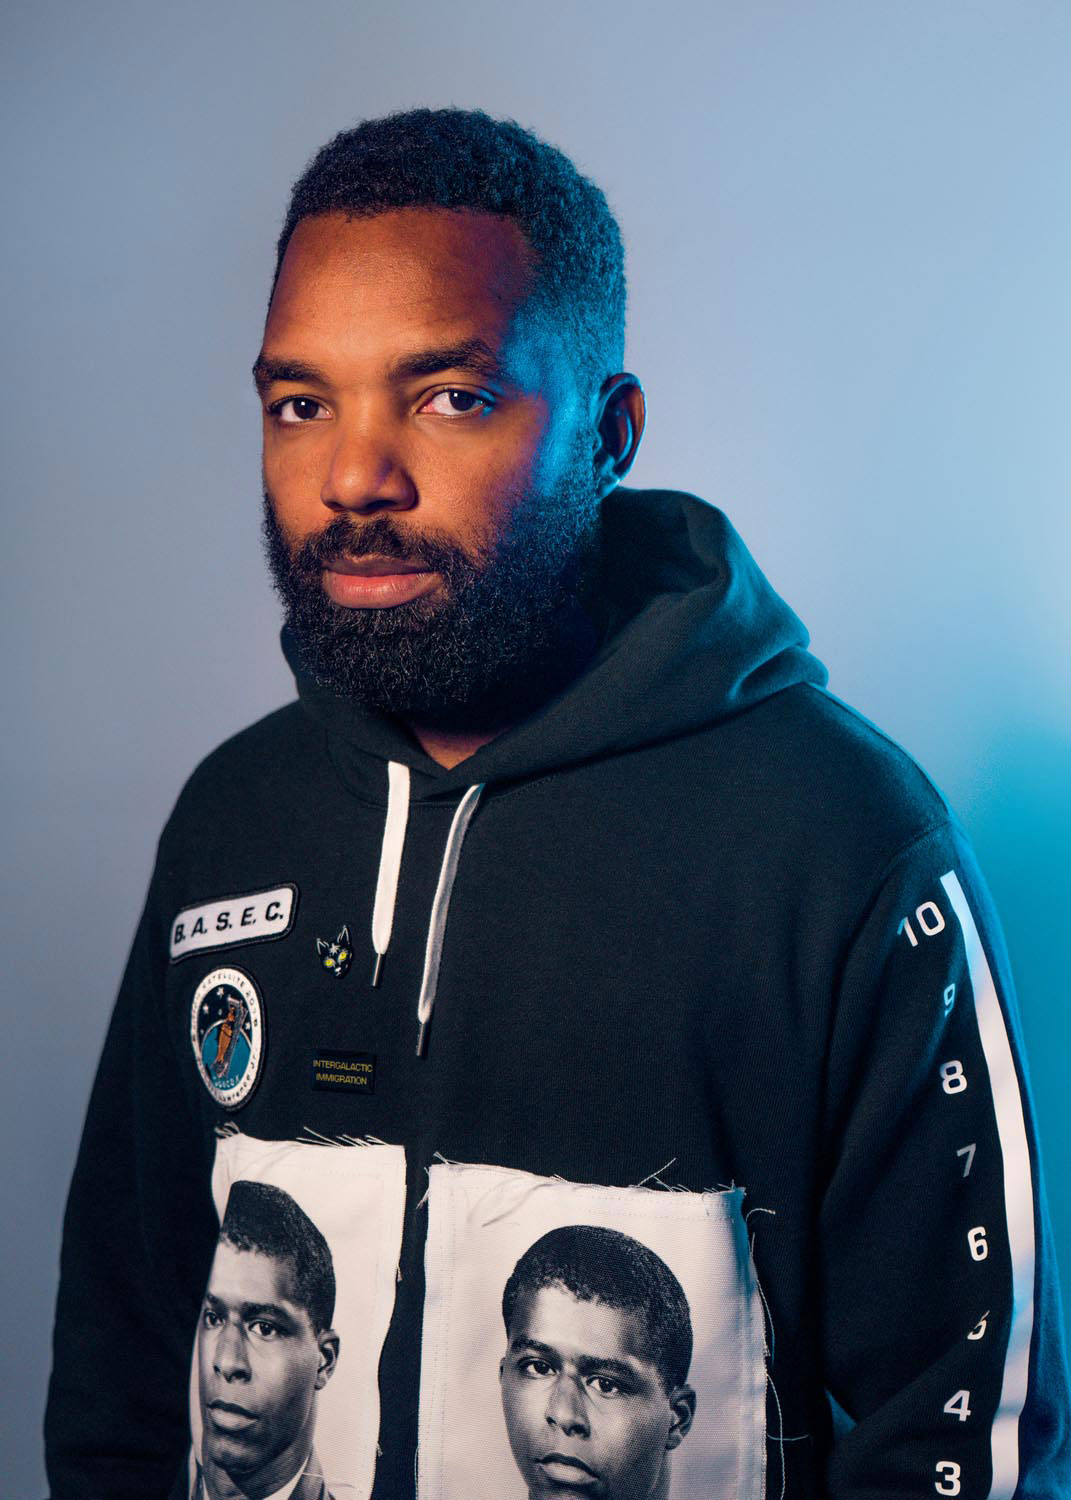 Tavares Strachan wearing one of his B.A.S.E.C. jackets. Photo by Brooke Didonato, courtesy the artist